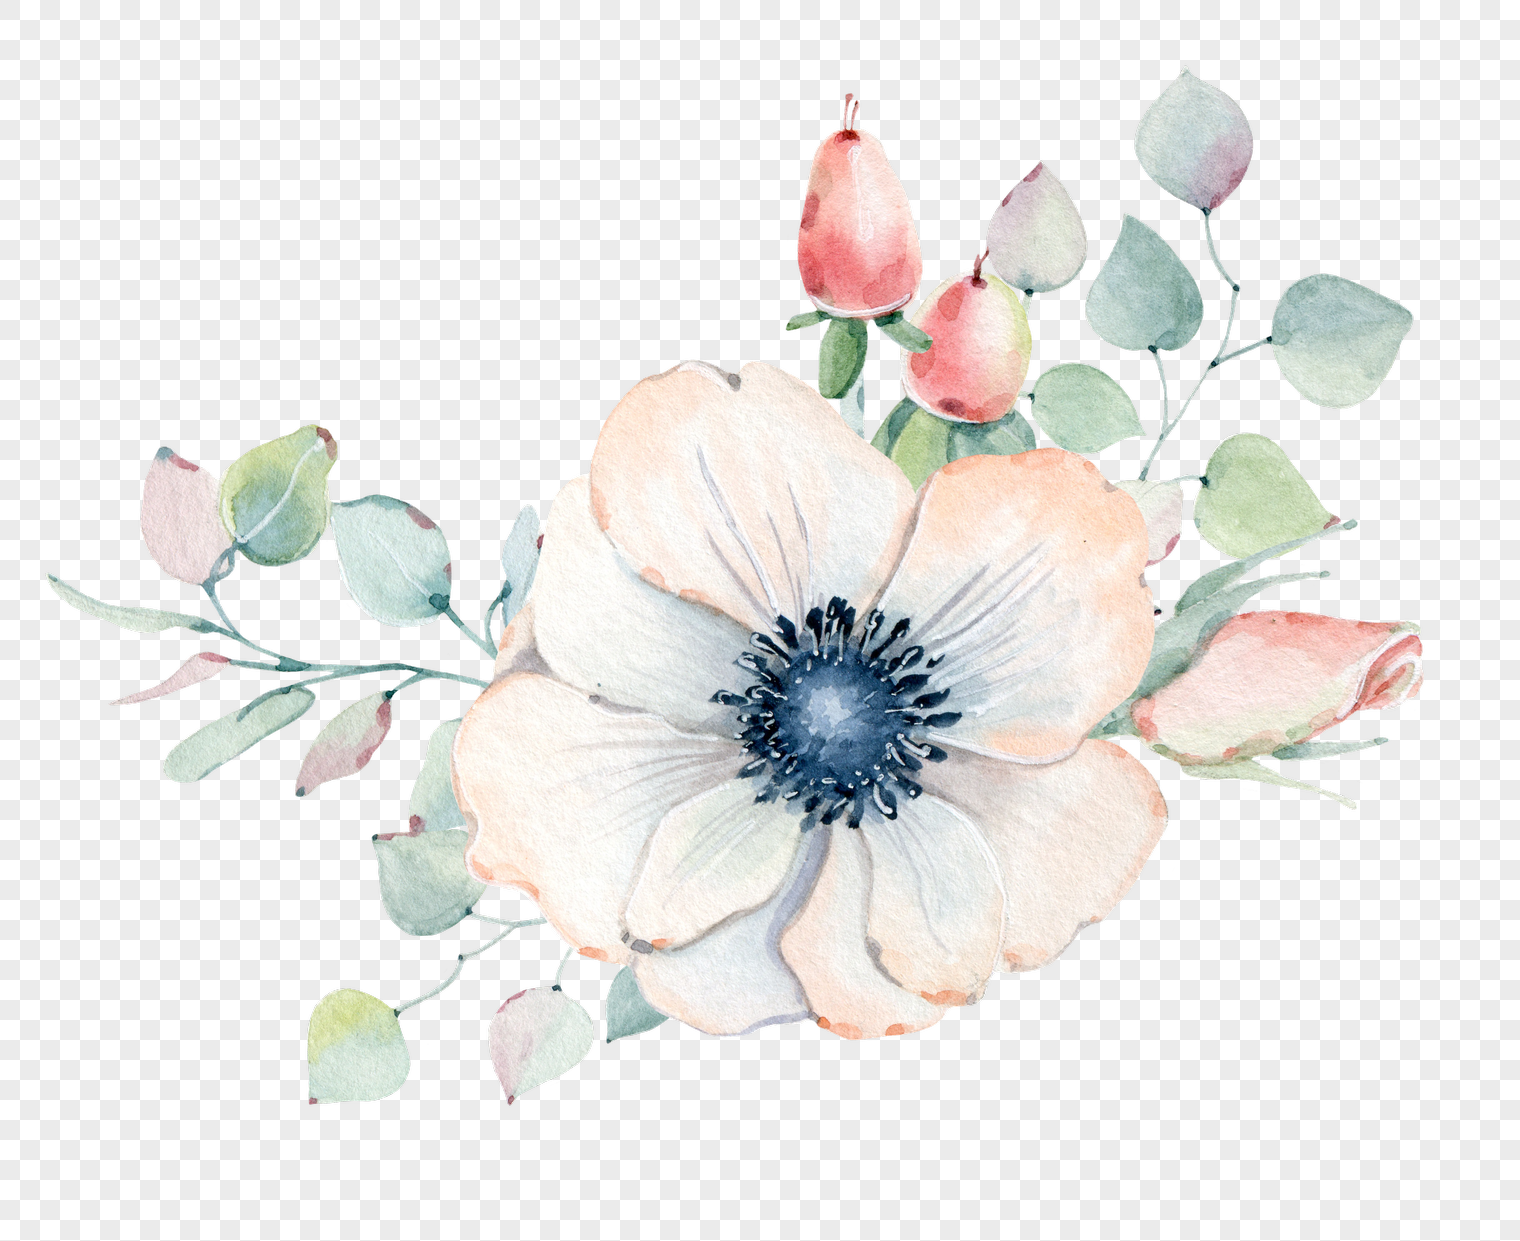 Hand painted simple white flowers png imagepicture free download hand painted simple white flowers mightylinksfo